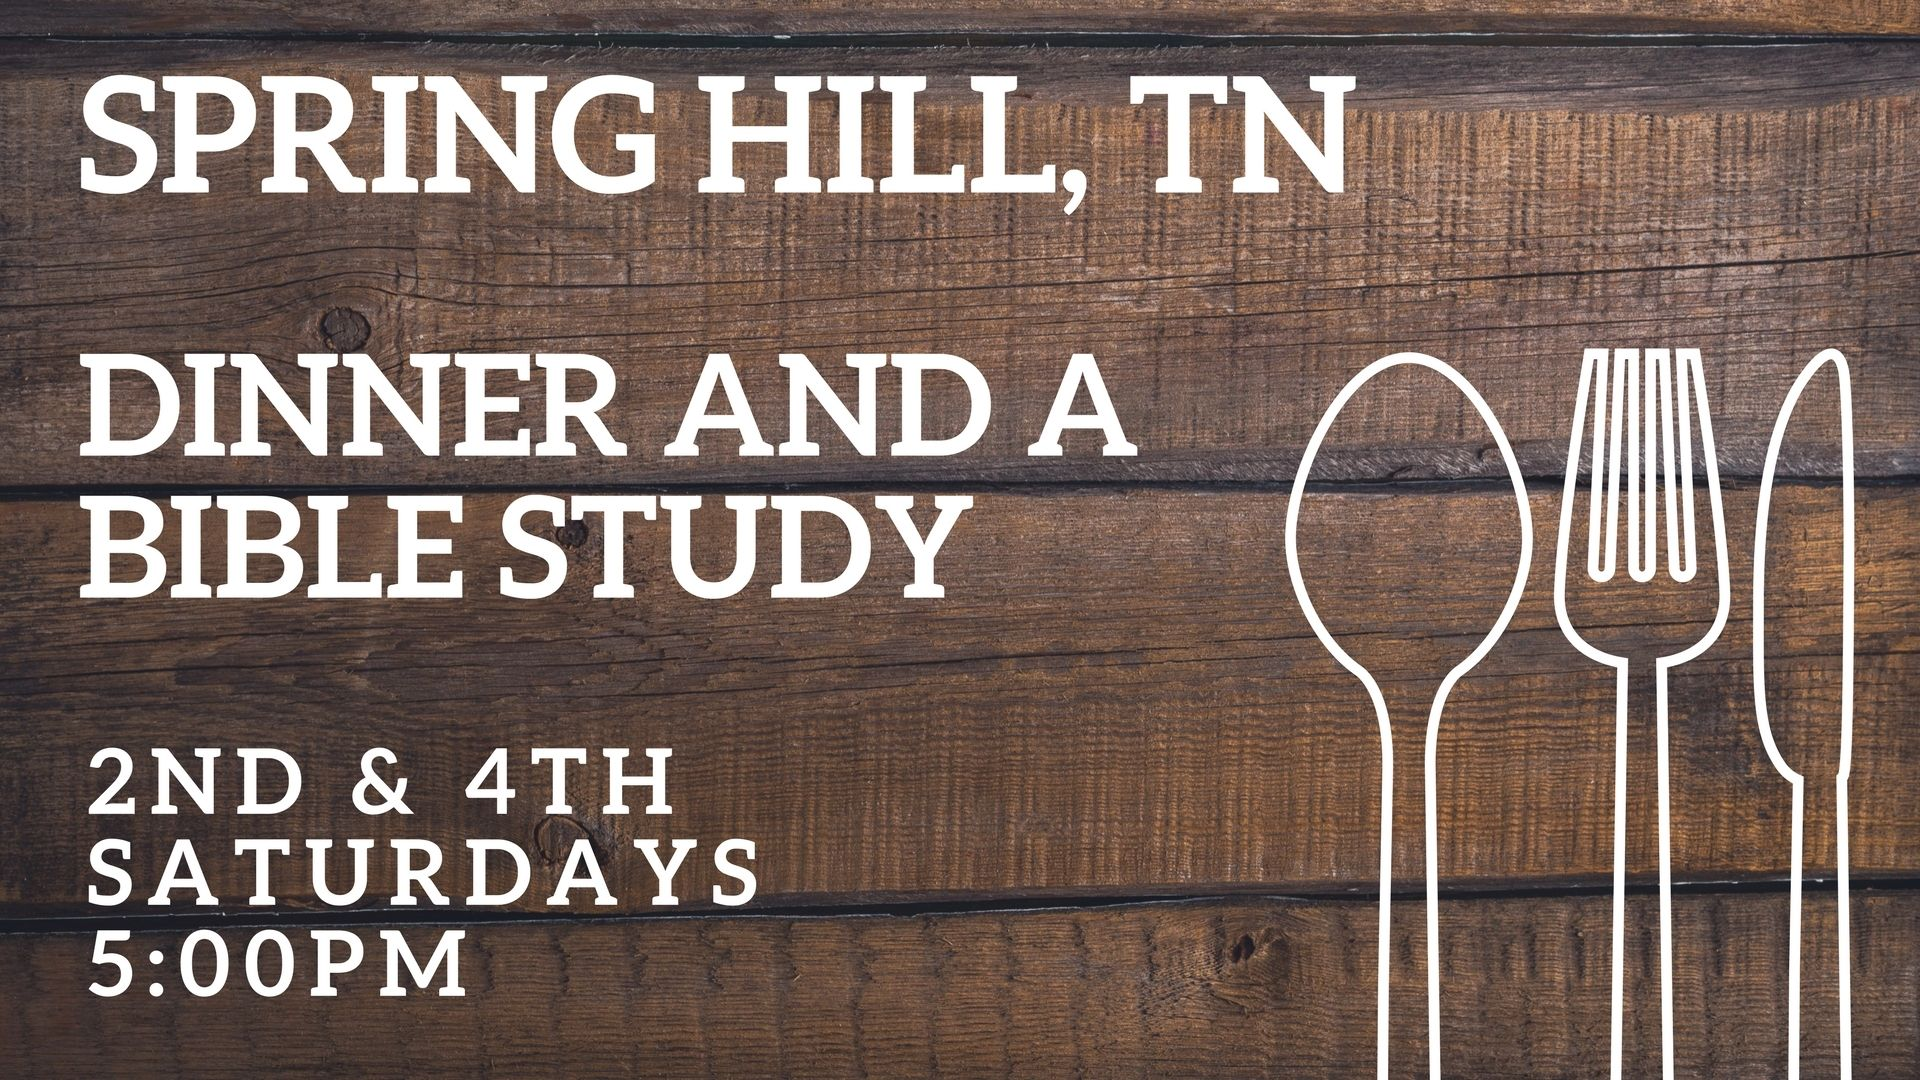 Spring Hill: Dinner and a Bible study